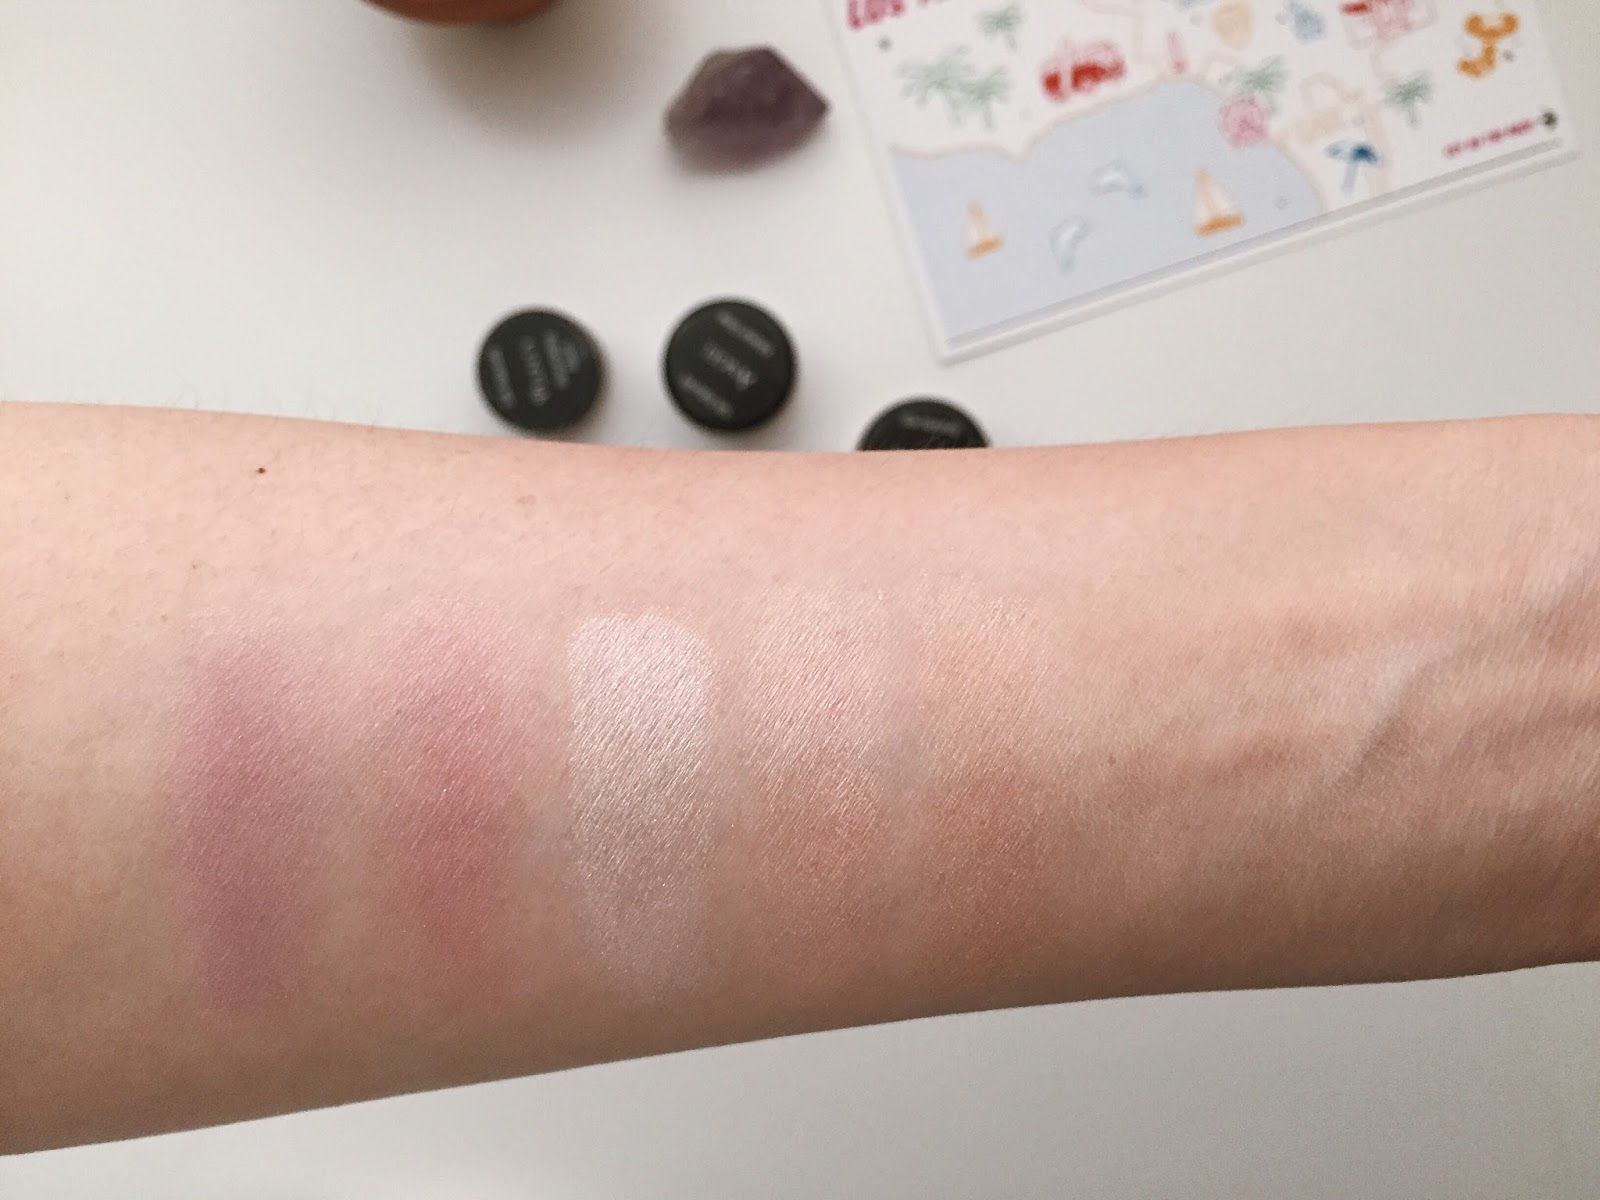 Silk Naturals Blush and Highlighter Glow Review Swatches folly plenty angel hellolindasau